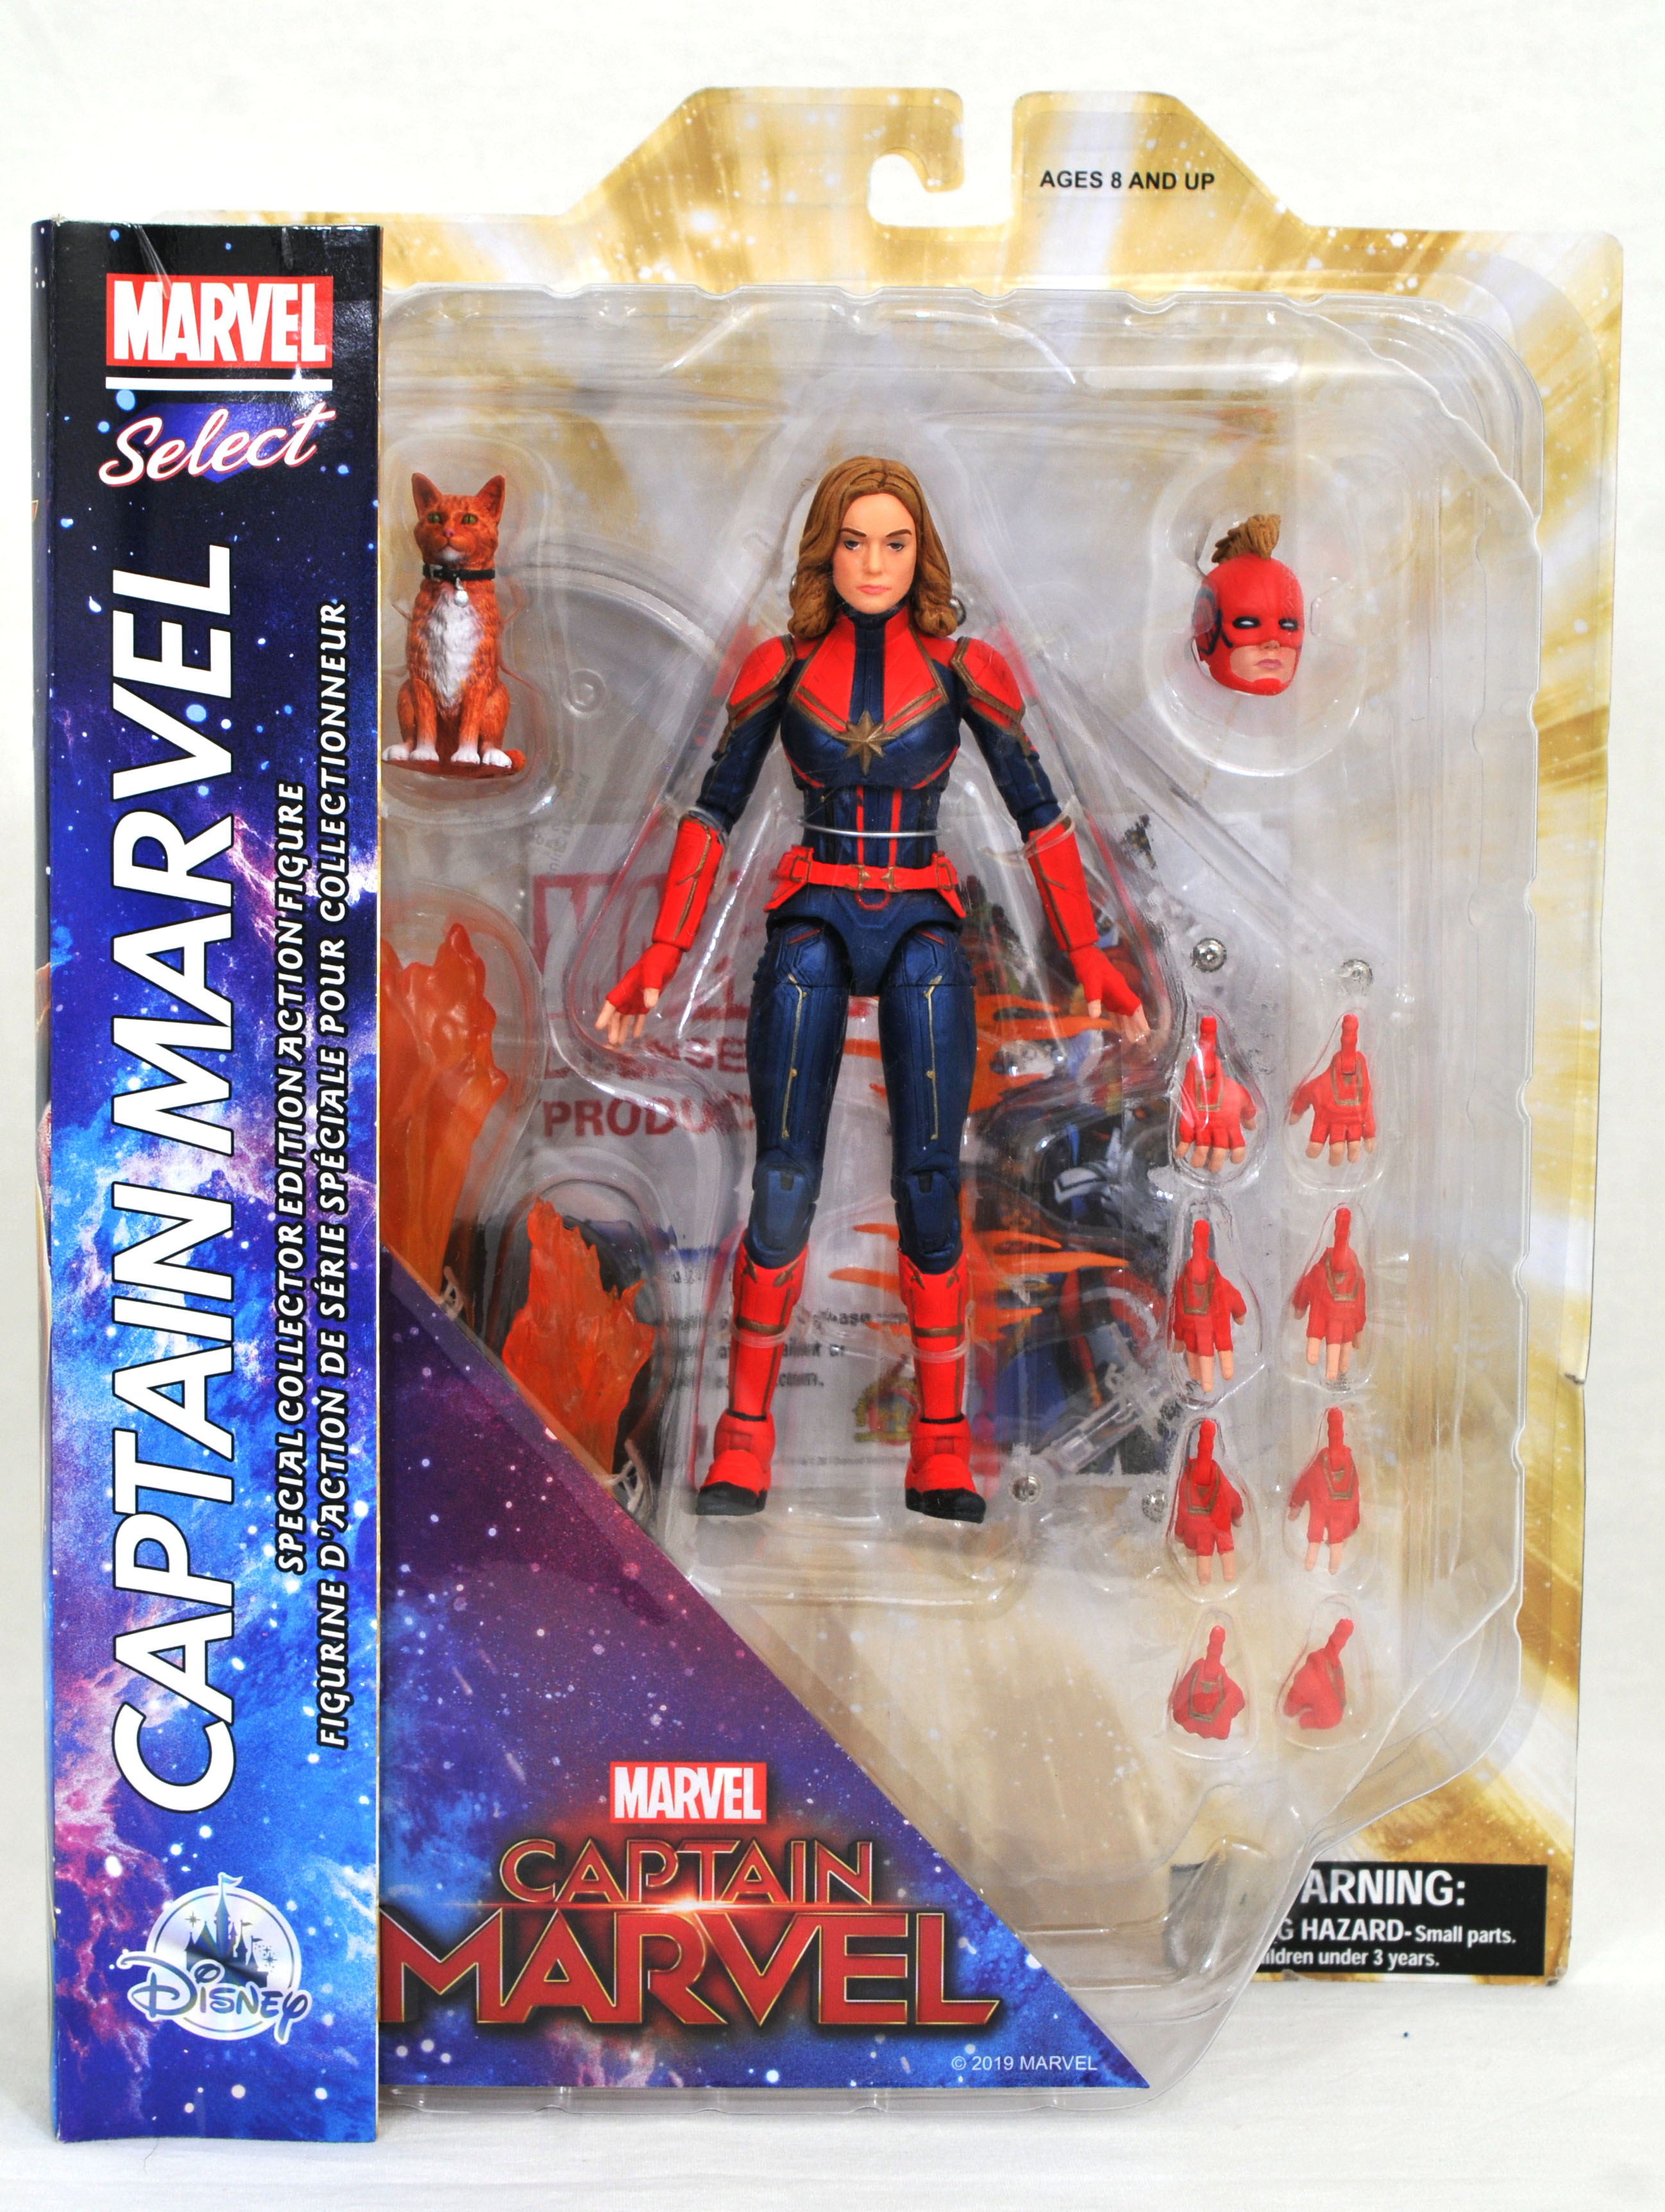 Three New Exclusive Marvel Select Figures Arrive at the Disney Store